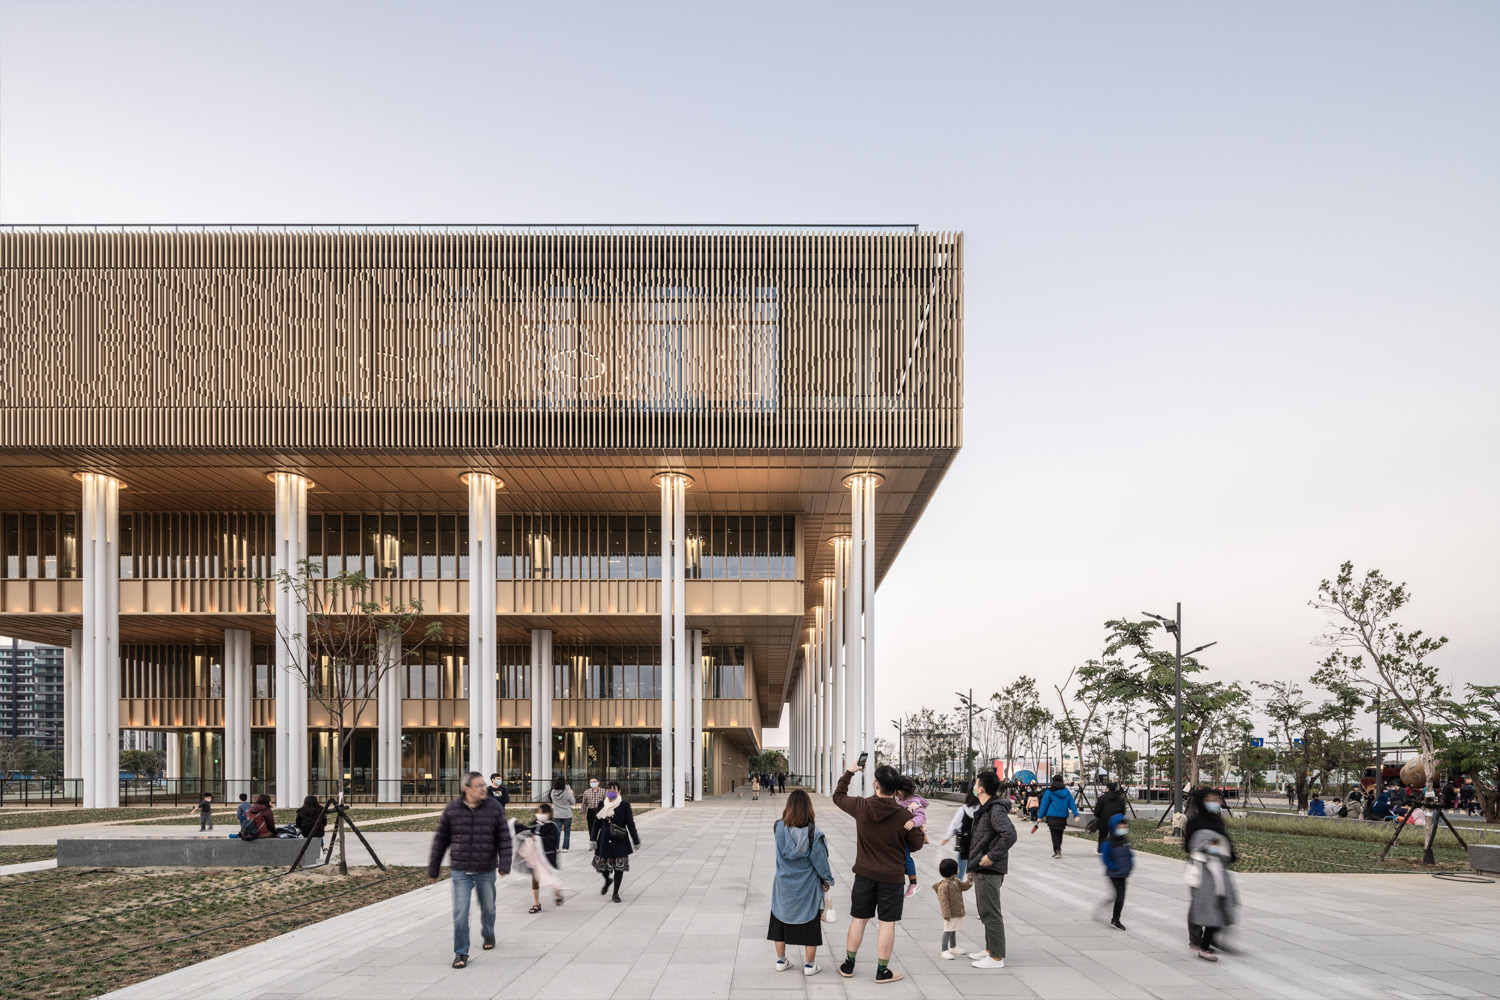 Slender columns support the cantilevers of the inverted stepped shape of the library, placed in rhythmical quartets, giving a feeling of weaving your way through a modern bamboo forest. Ethan Lee